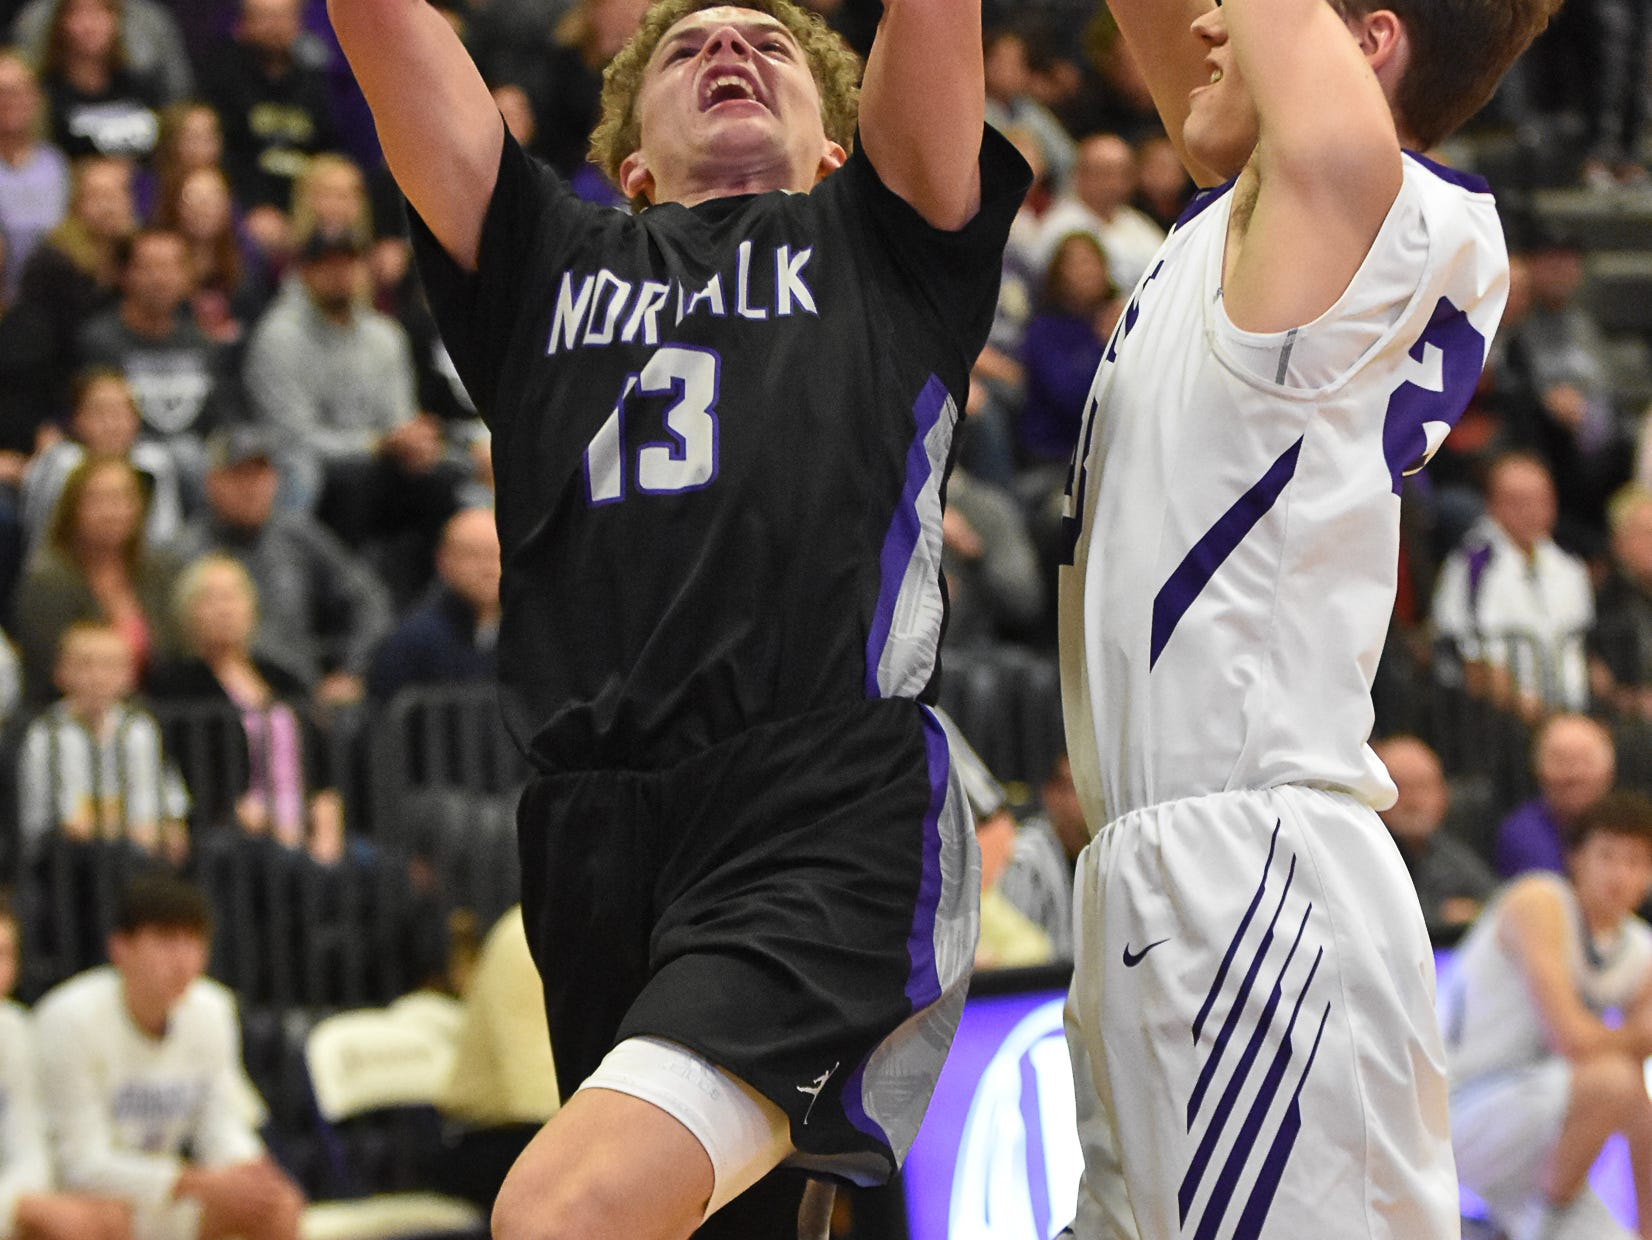 Bowen Born goes in for a layup with Indianola's Tyce Johnson defending. The Indianola boys slipped to 1-1 on the season with a 65-48 home loss to Norwalk on Nov. 30, 2018.